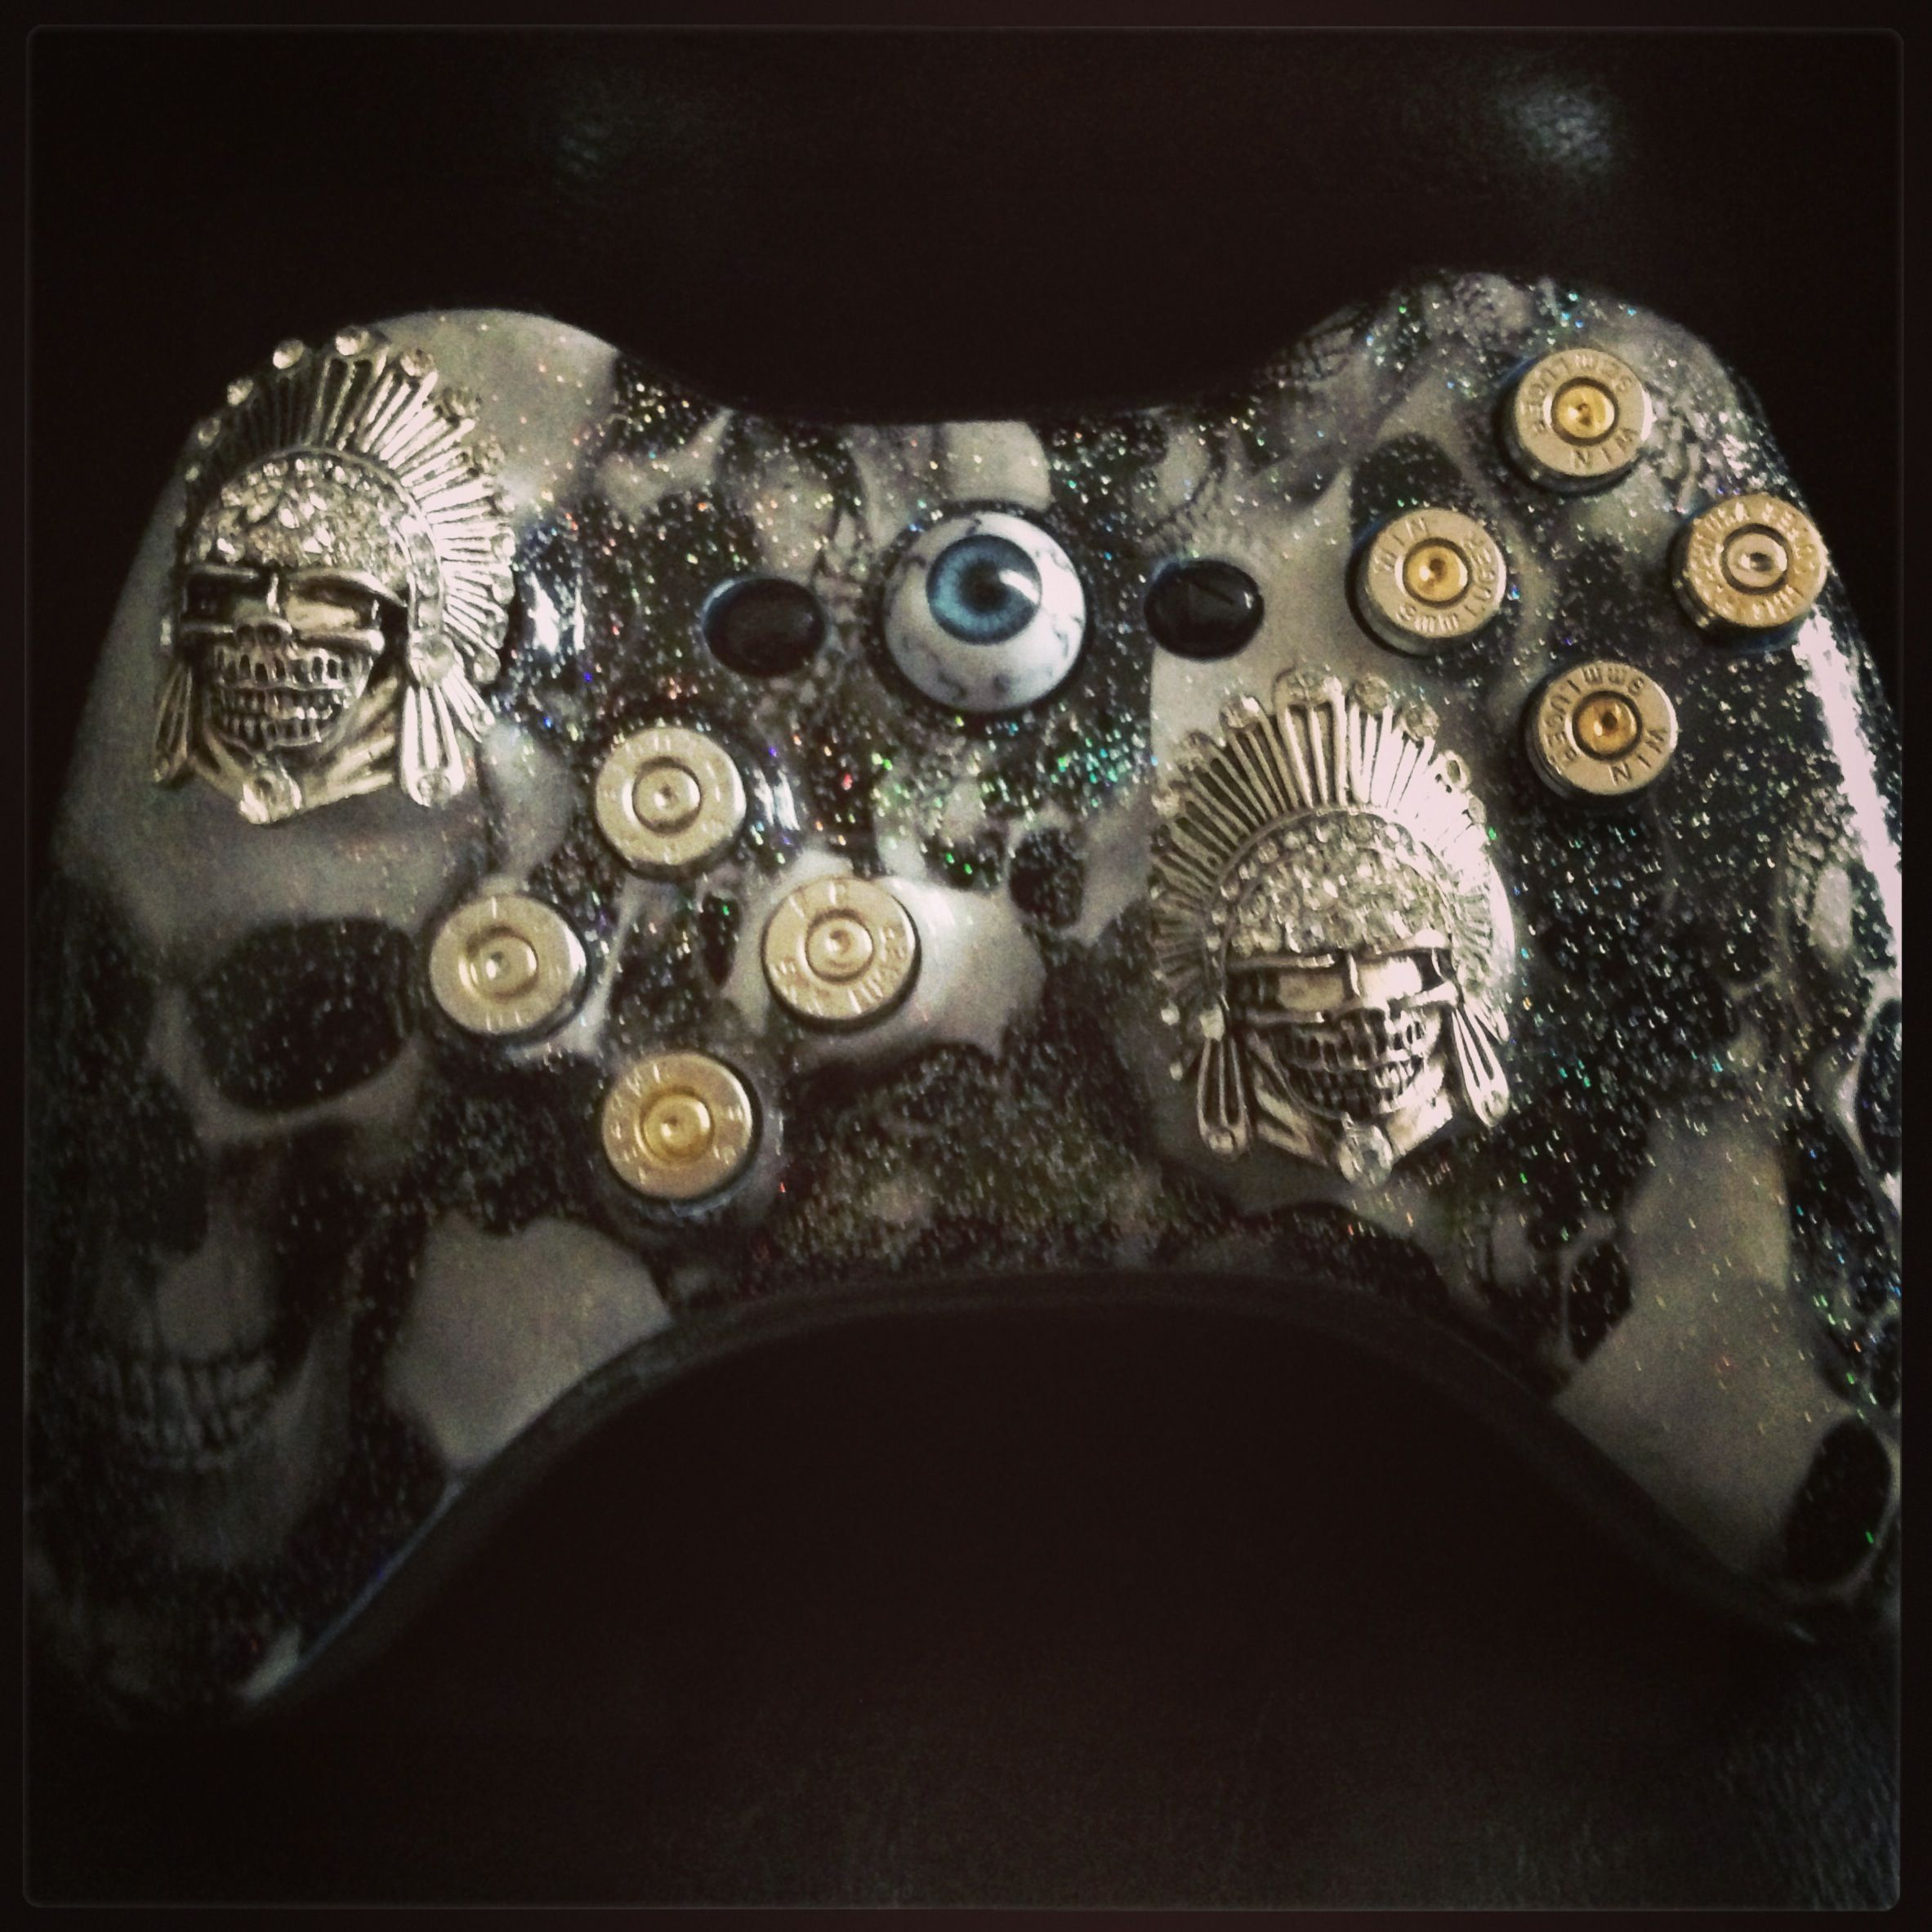 the best custom xbox - photo #25